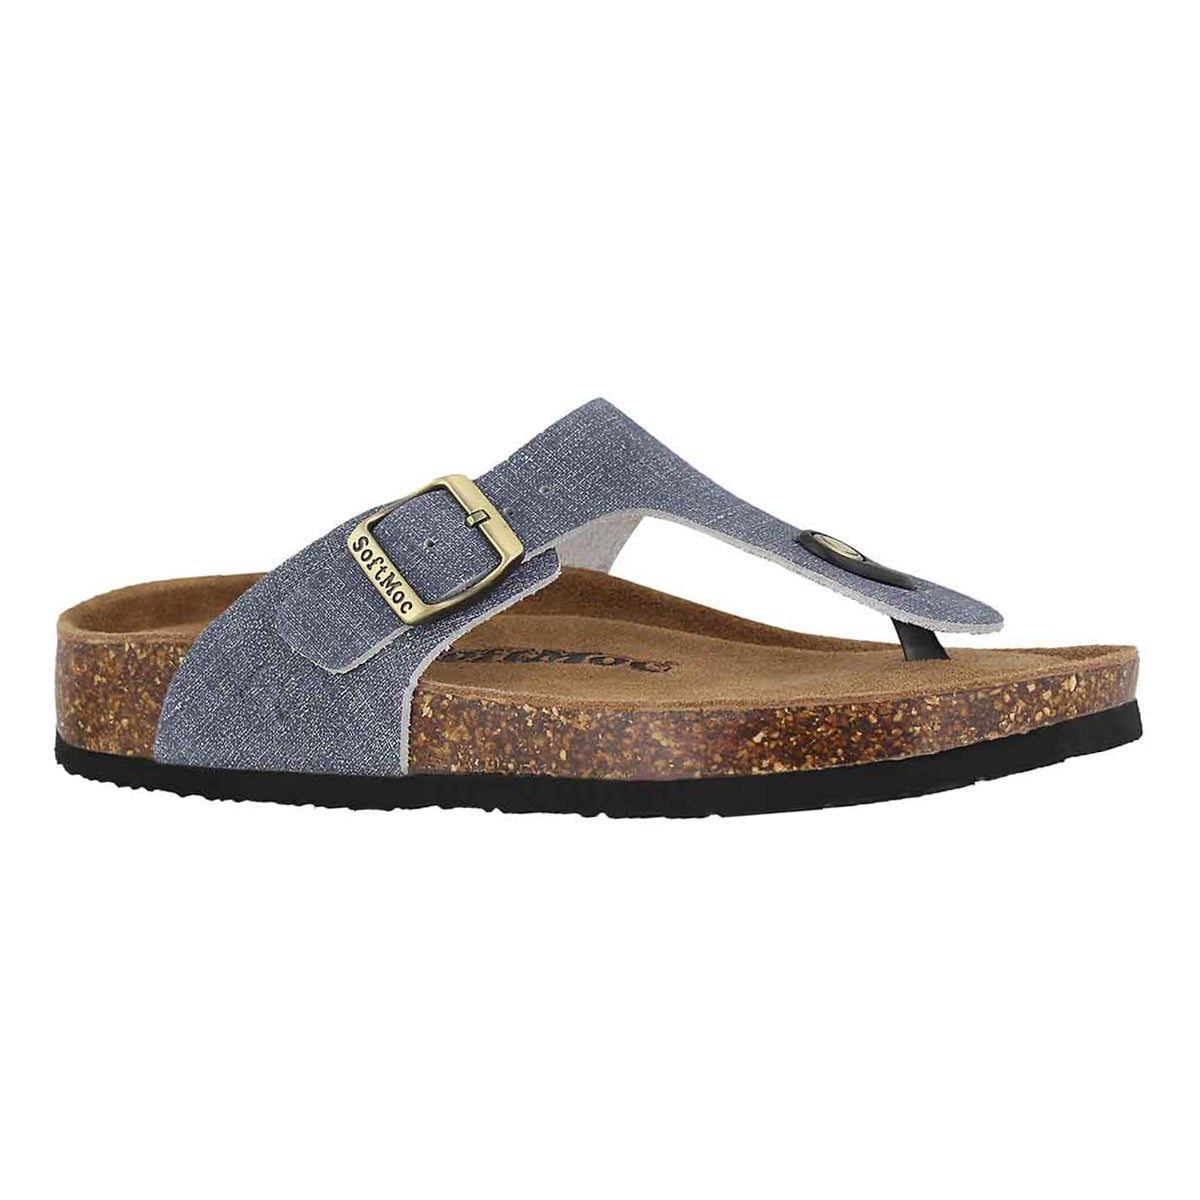 Women's ANGY 5 denim memory foam thong sandals